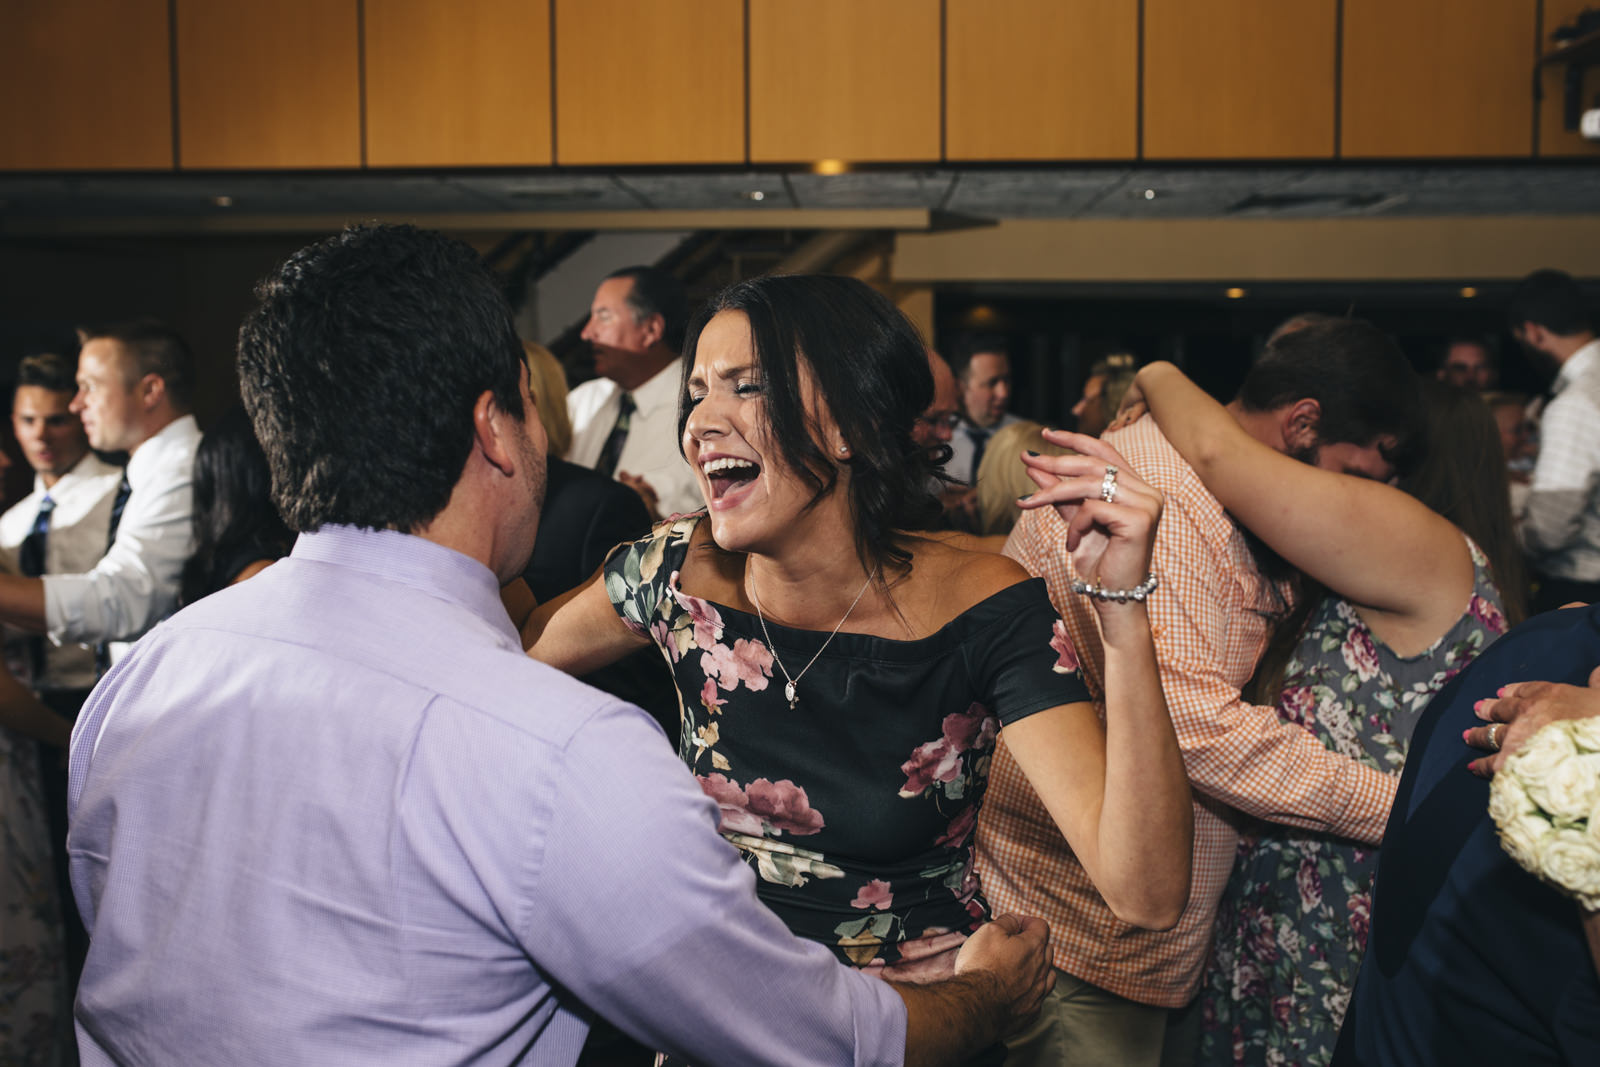 people dance at the wedding reception for nautical wedding in Michigan.